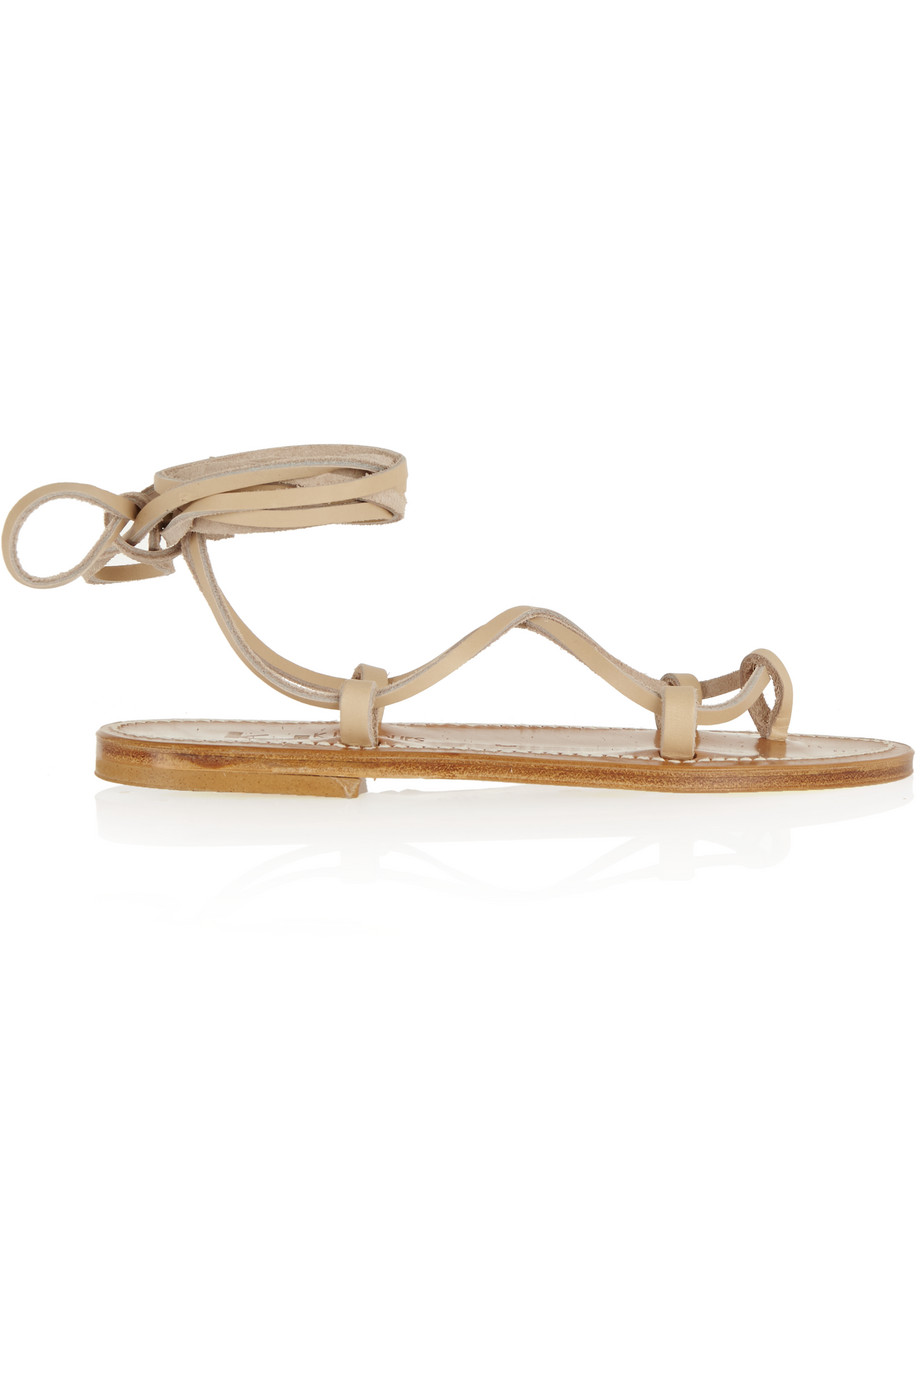 Bikini Leather Sandals, K Jacques St Tropez, Beige, Women's US Size: 5.5, Size: 36